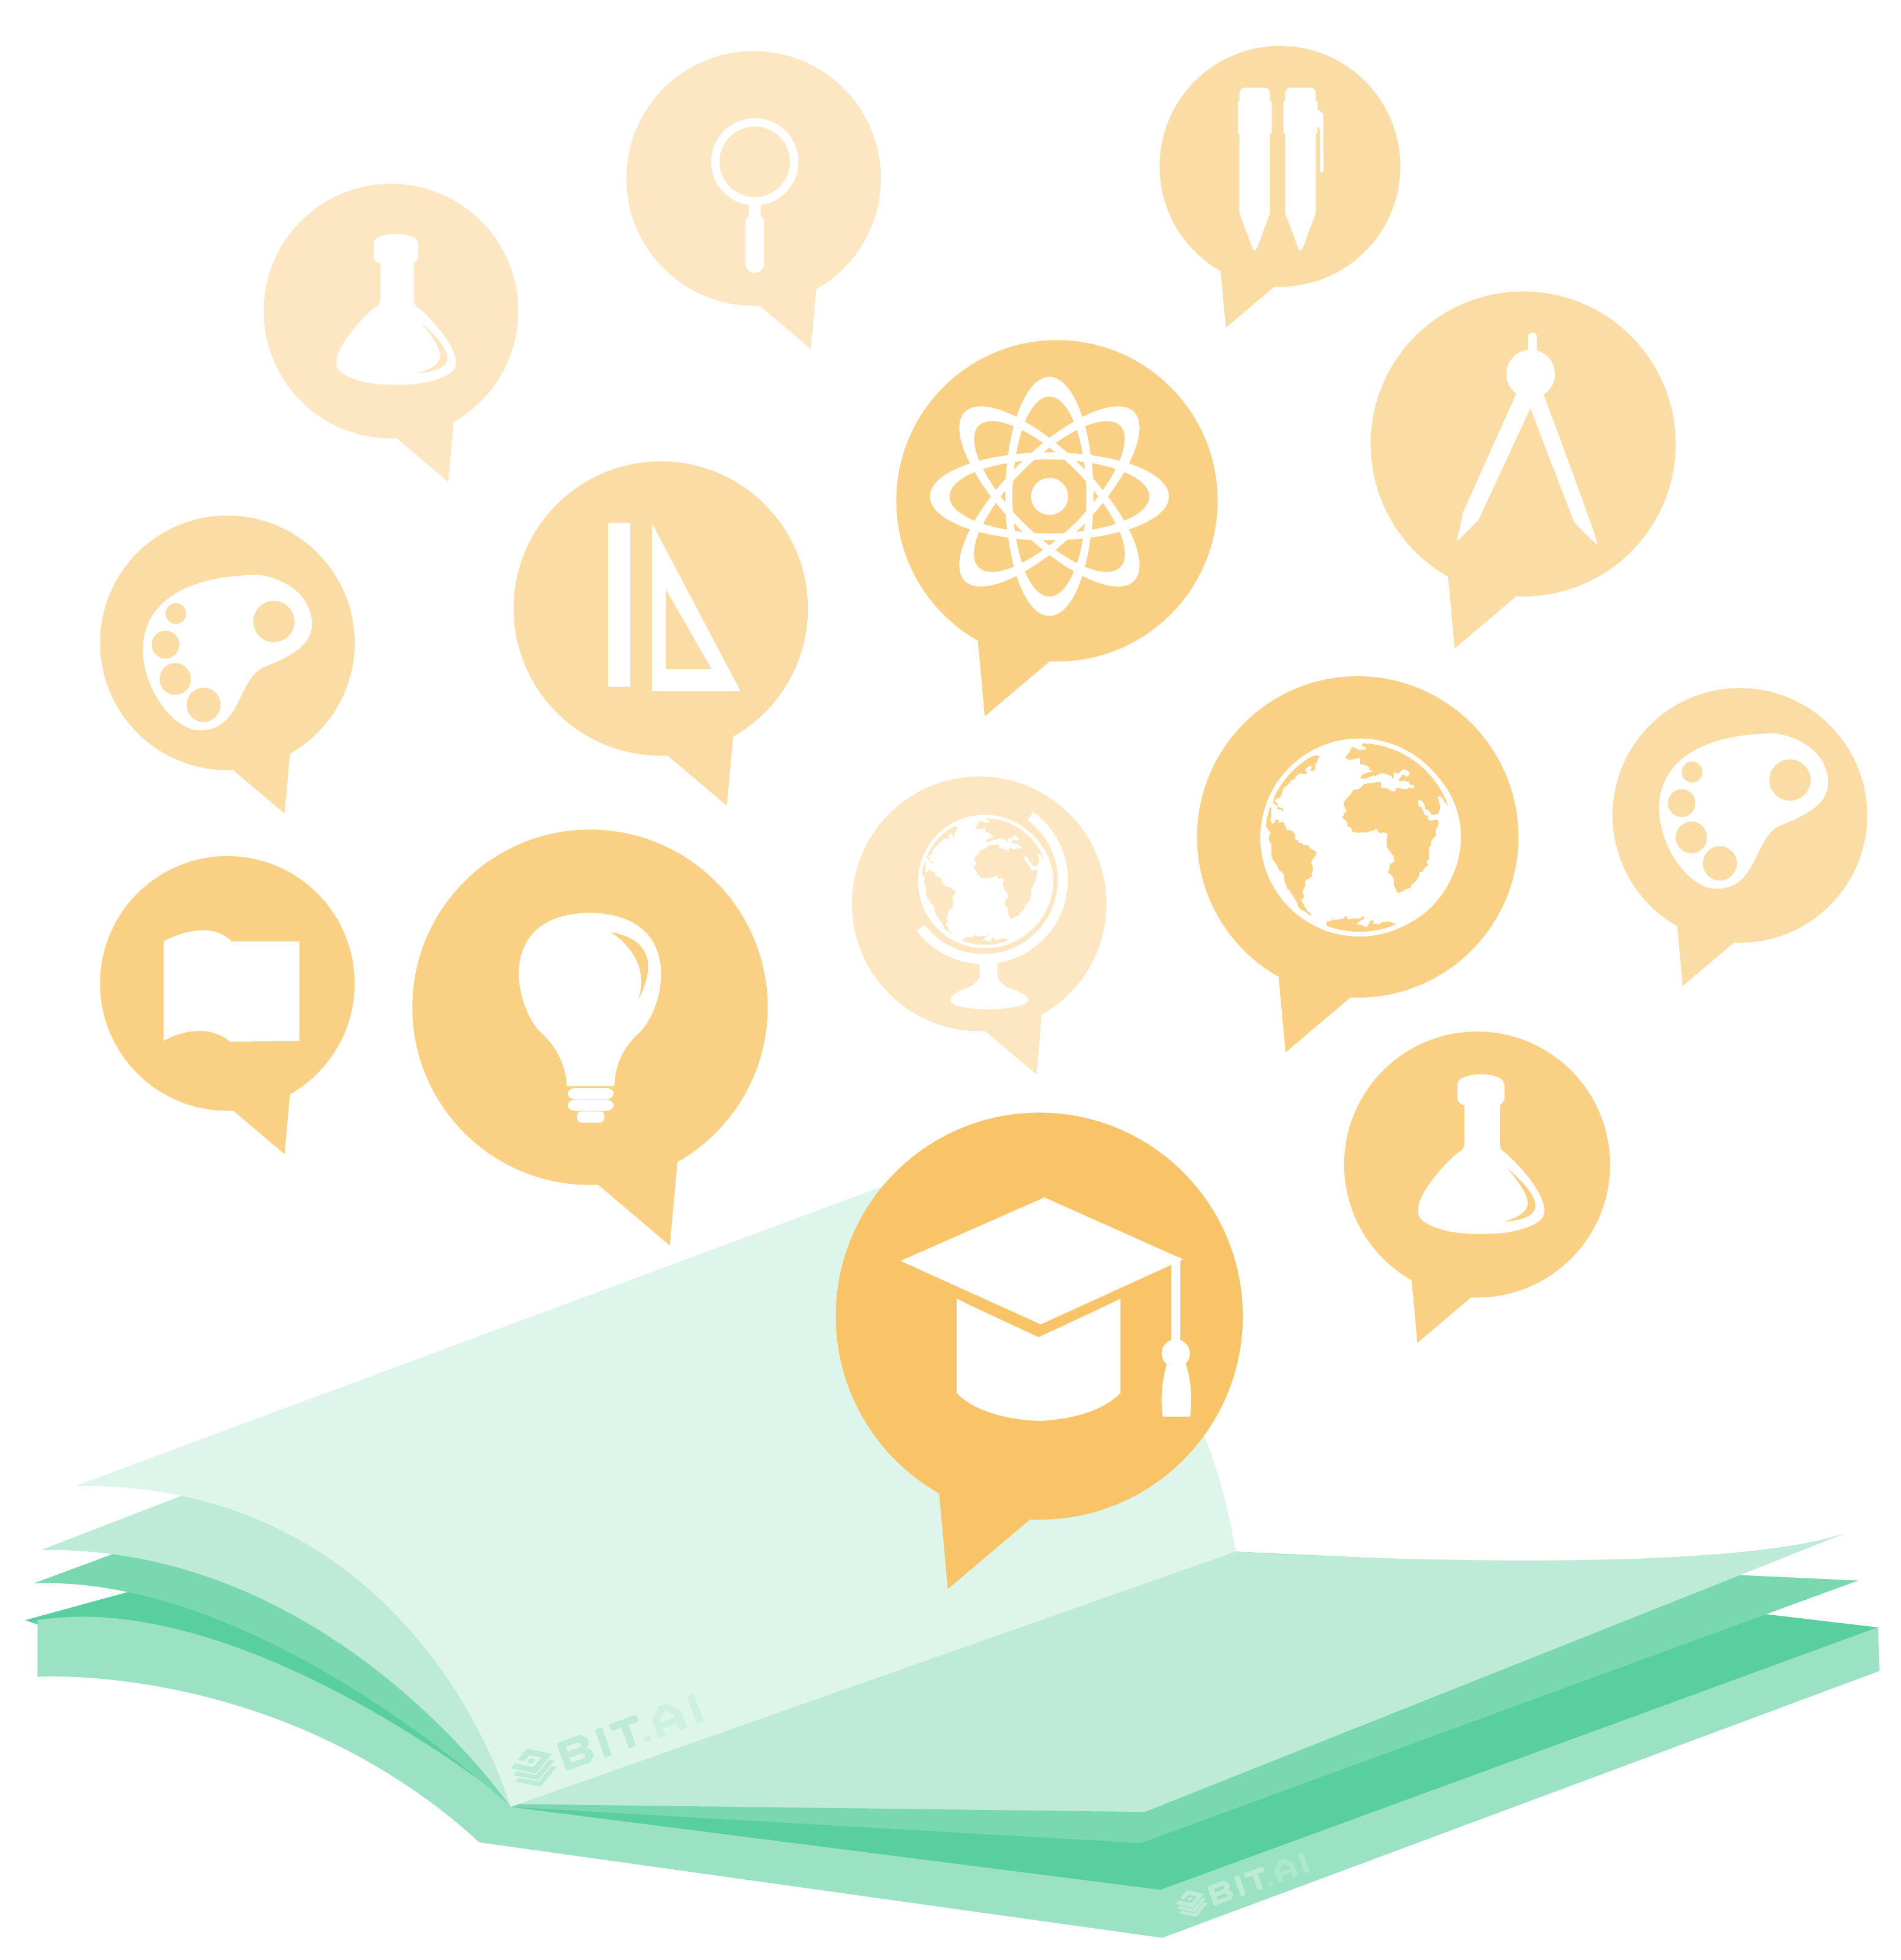 Knowledge booster icons